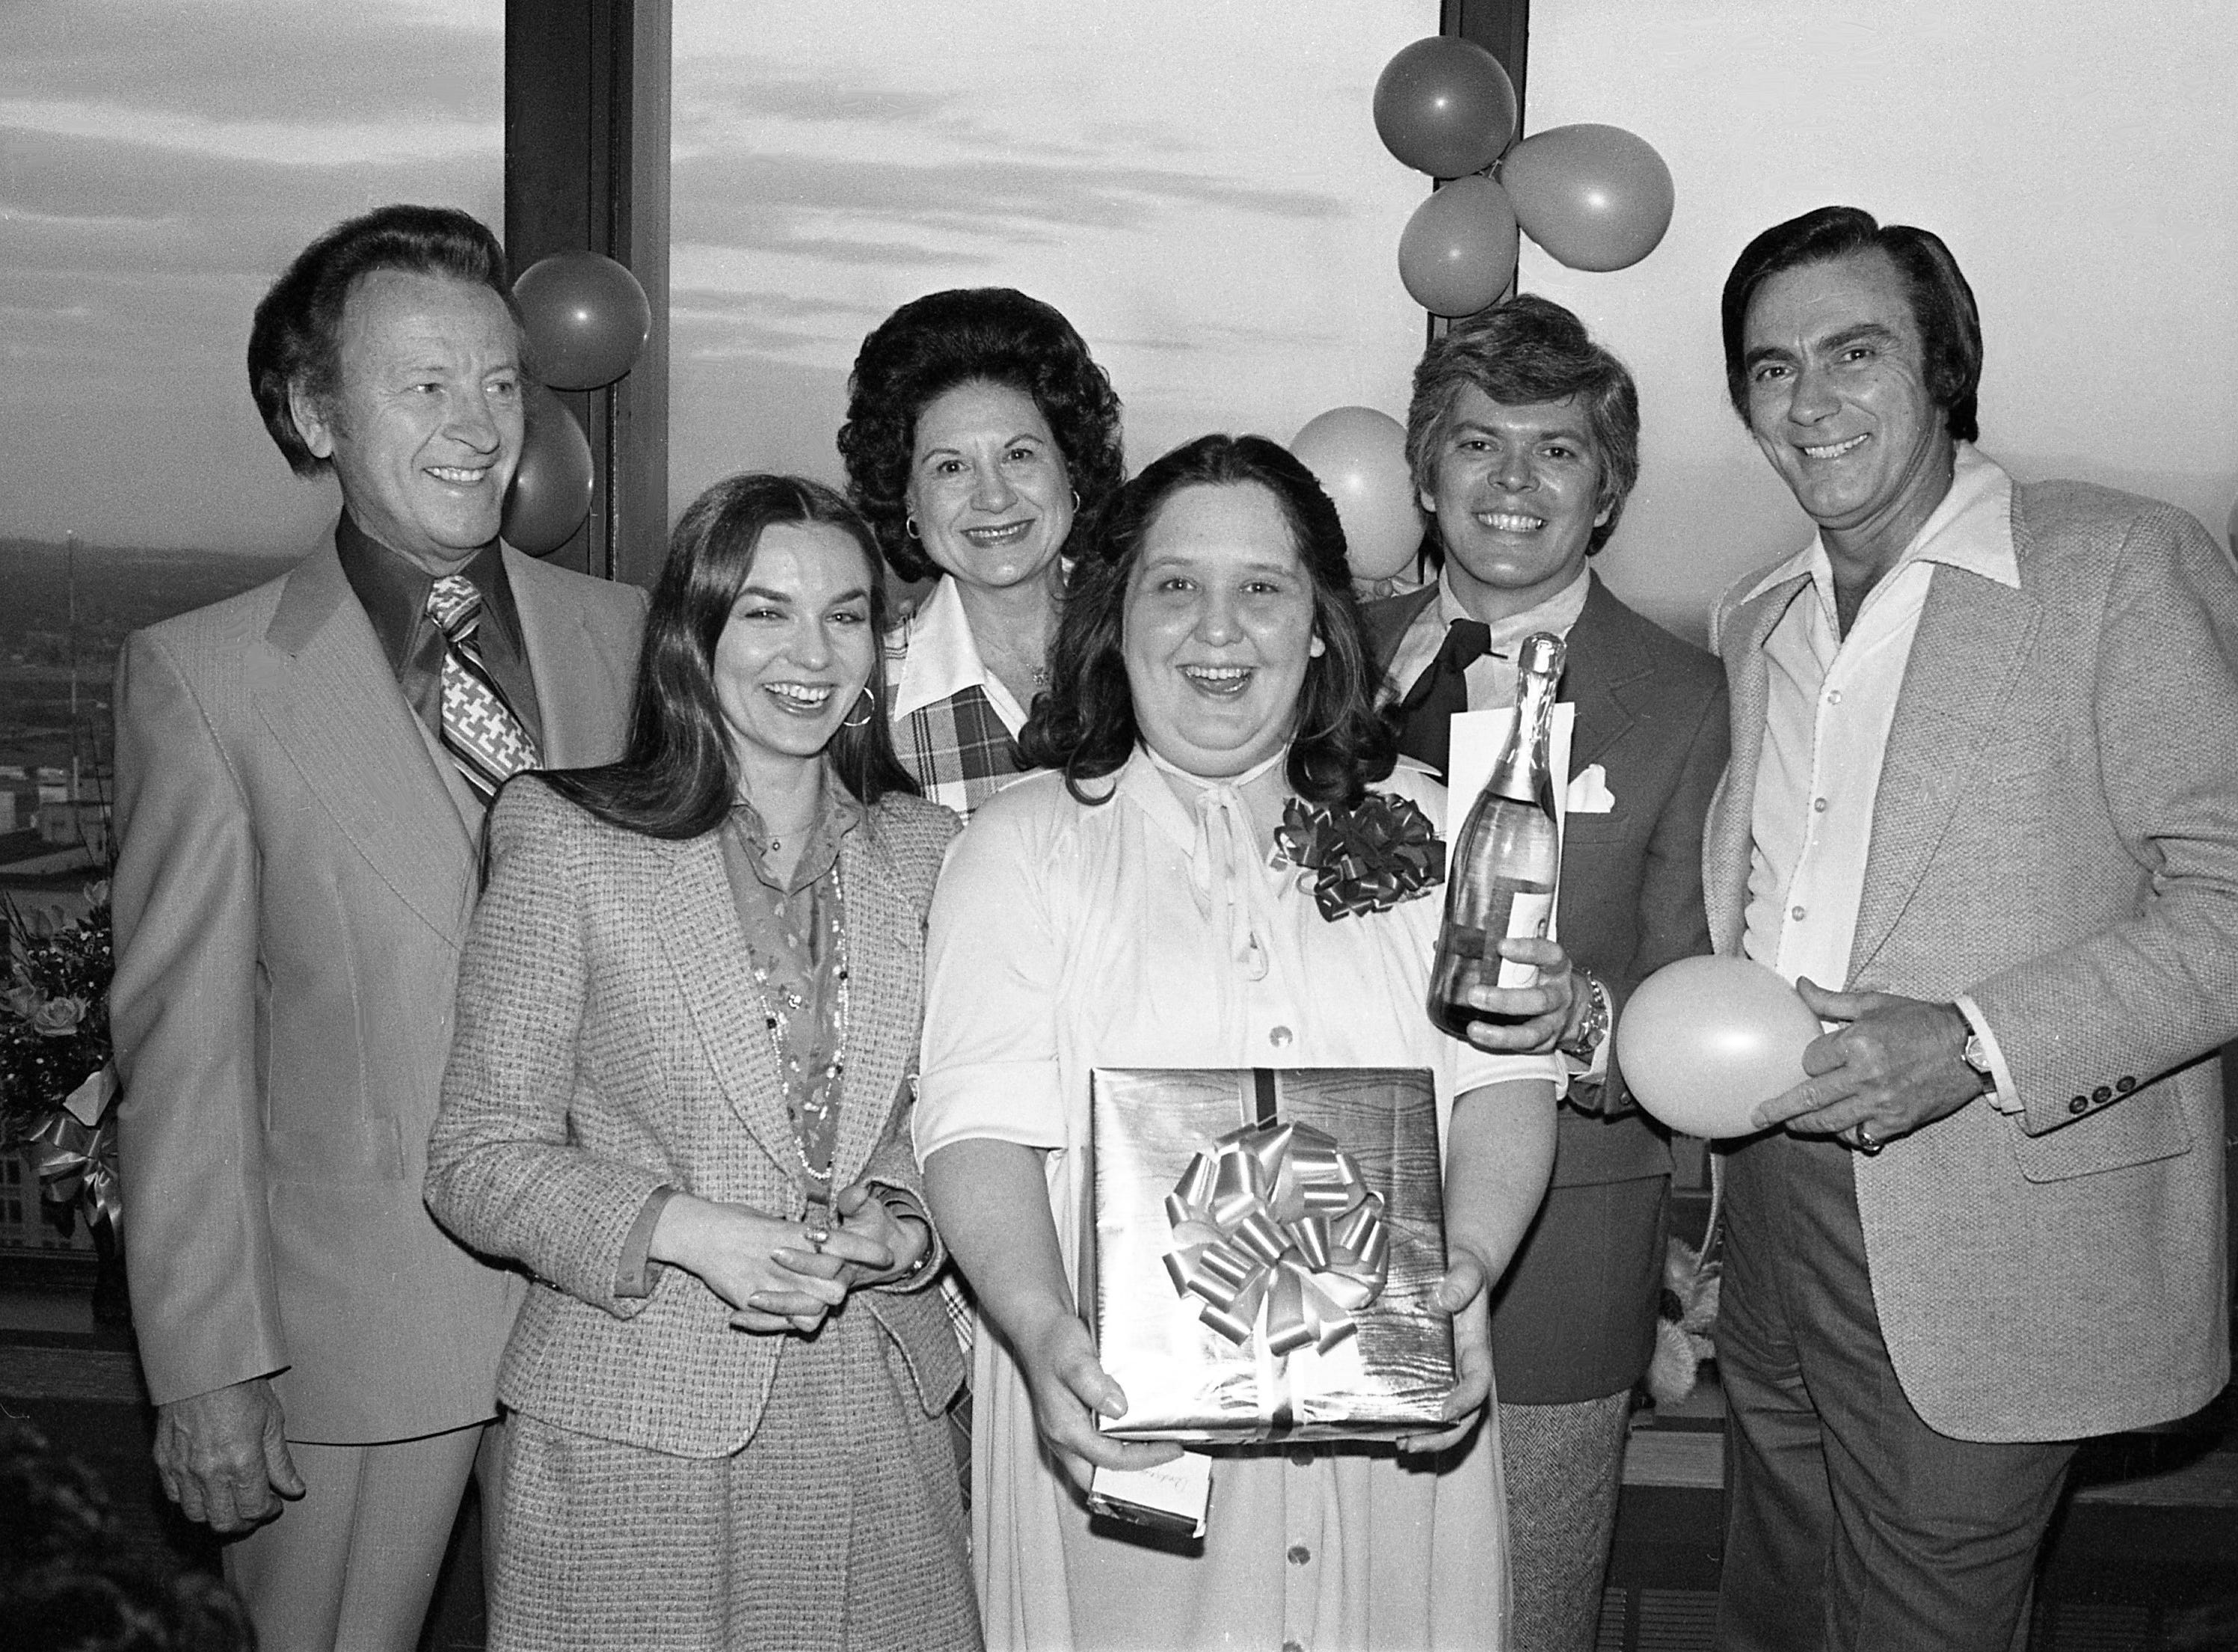 Andrea Smith, third from right, is surprised by a party honoring her 10th anniversary with Top Billing Talent Agency by talent agent Tandy Rice, second from right, at the City Club on Feb. 28, 1979. Among her friends at the celebration are Johnny Wright, left, Crystal Gayle, Kitty Wells and Jim Ed Brown.